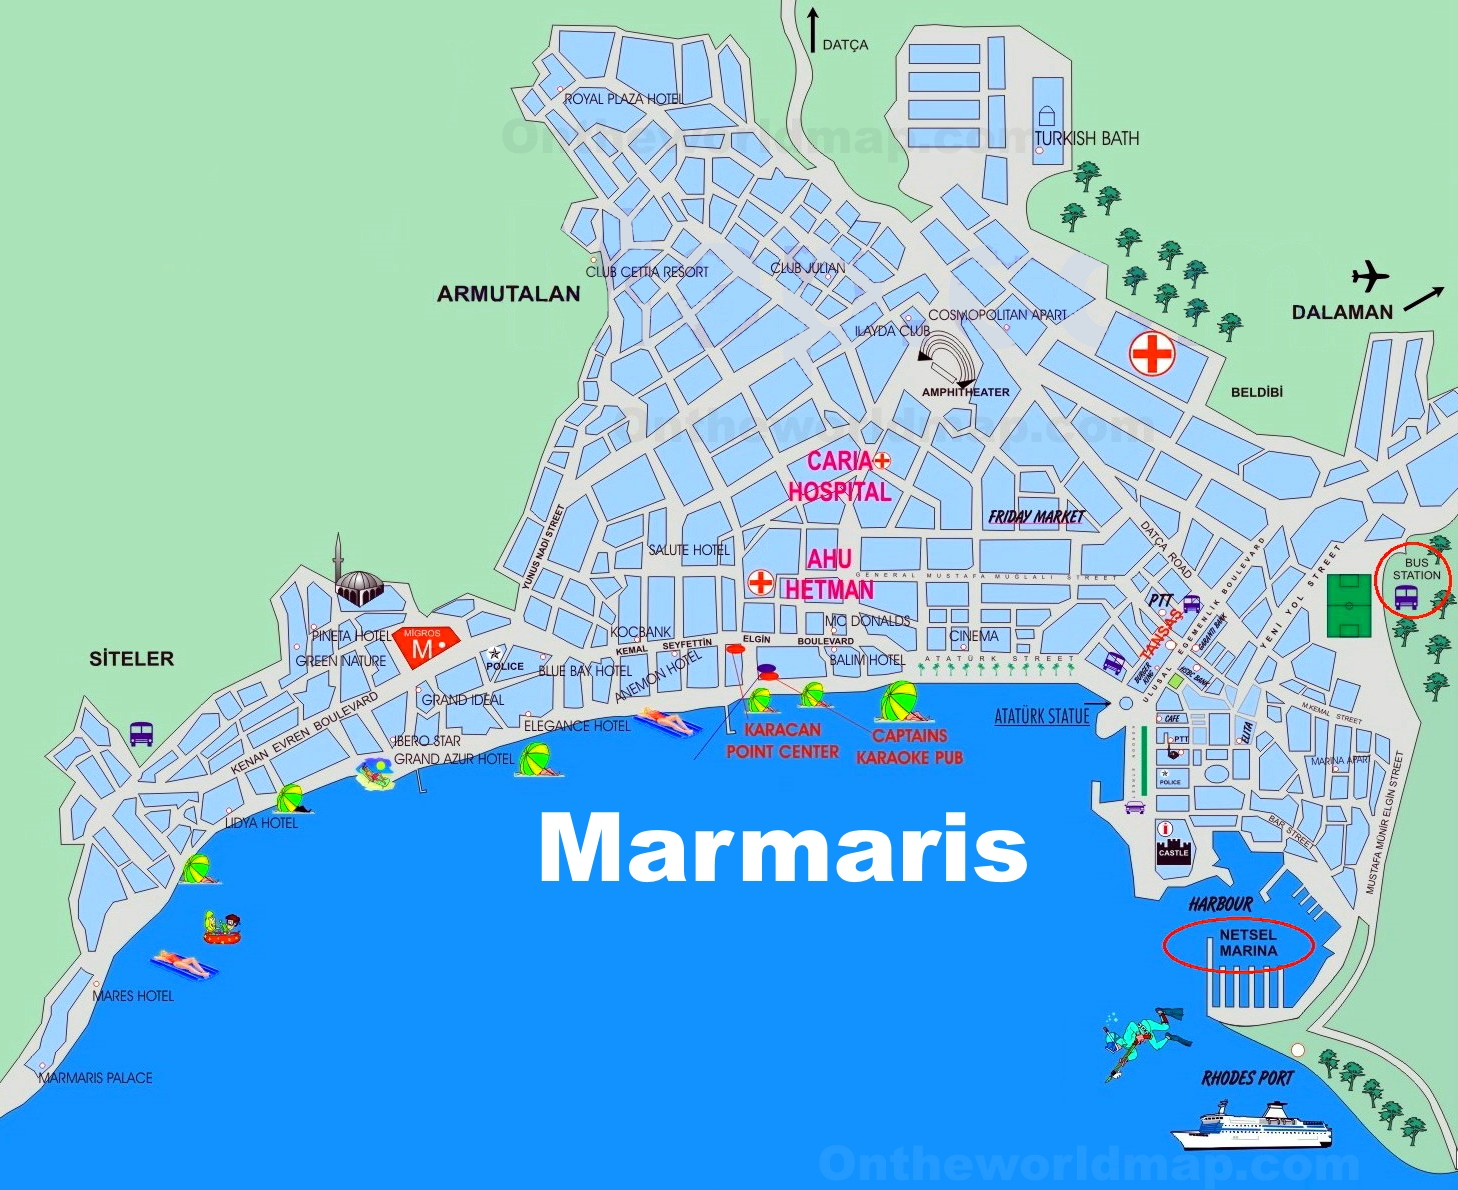 map of venice italy streets with Marmaris Tourist Map on Bonn Bad Godesberg Map likewise Hamburg City Centre Map also La Rochelle Tourist Map as well Pool Dubai Mall besides Trieste Italy Yay Or Nay.